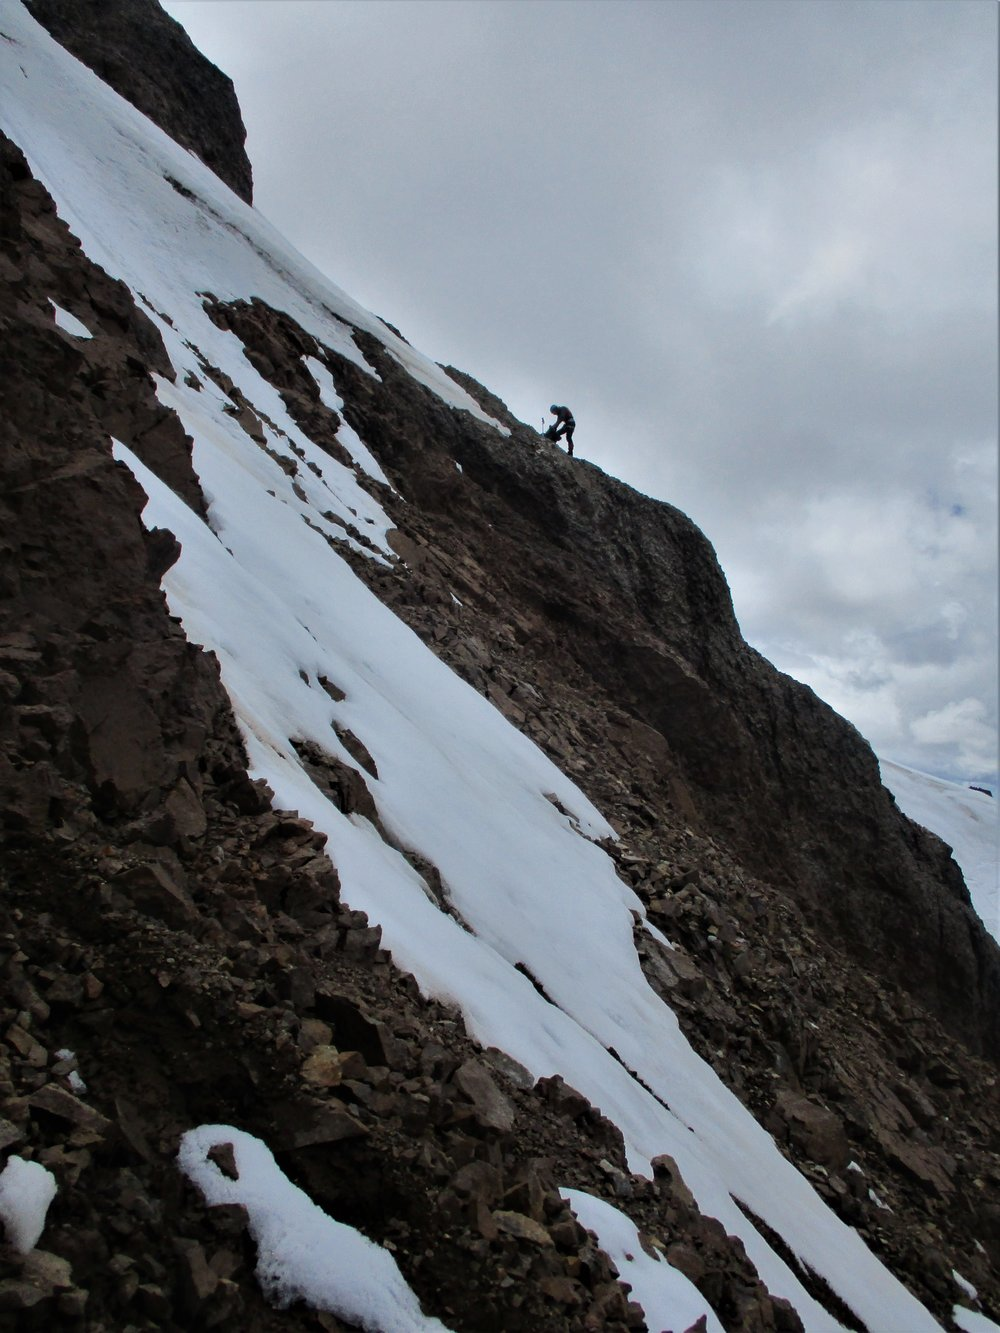 After already climbing very loose steep rock the serious work began once we hit the Glacial cap!!!